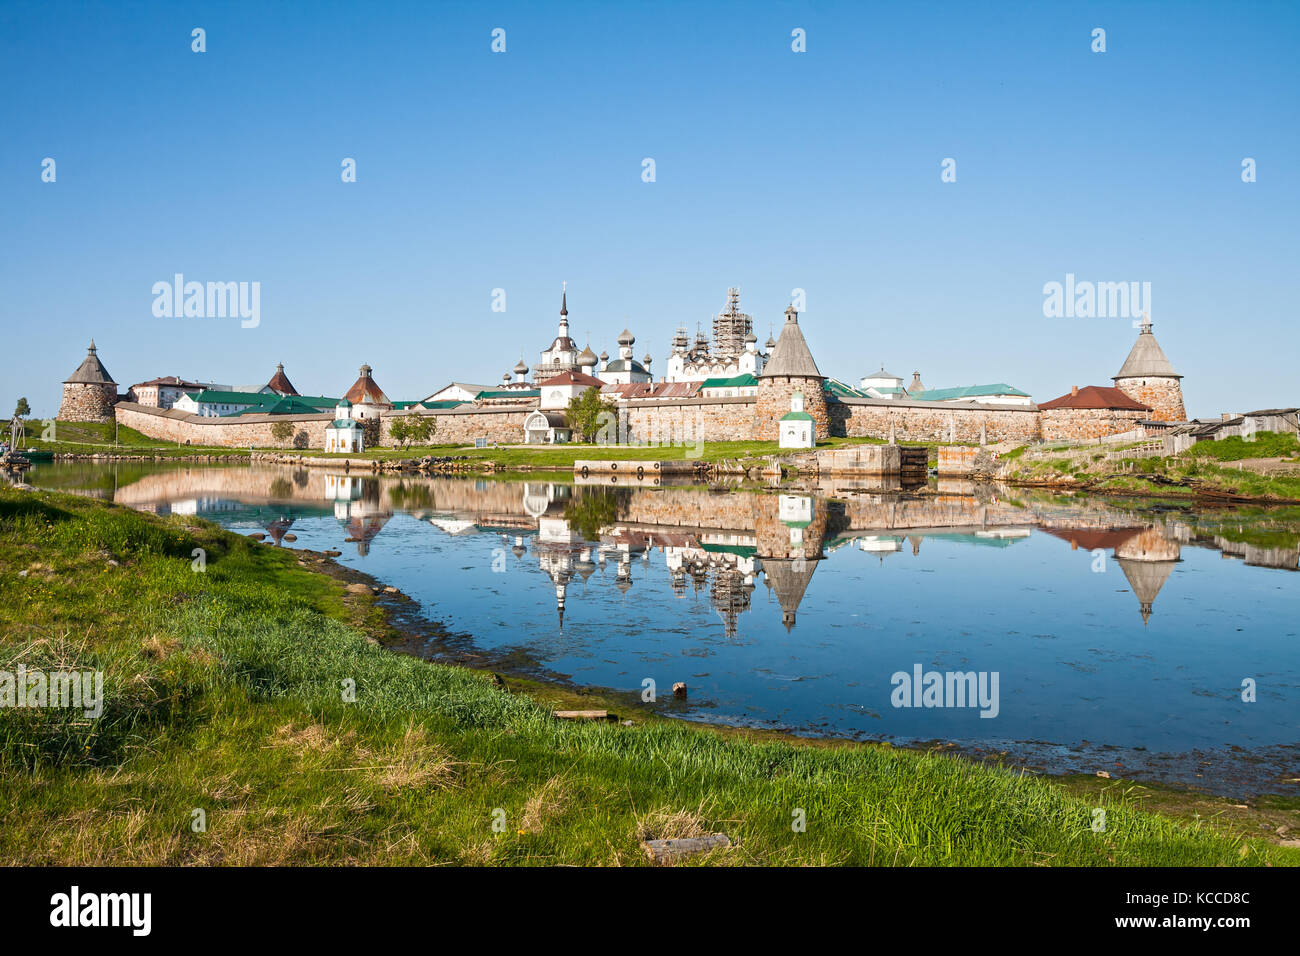 View on Solovetsky Monastery with reflection in water, Russia Stock Photo